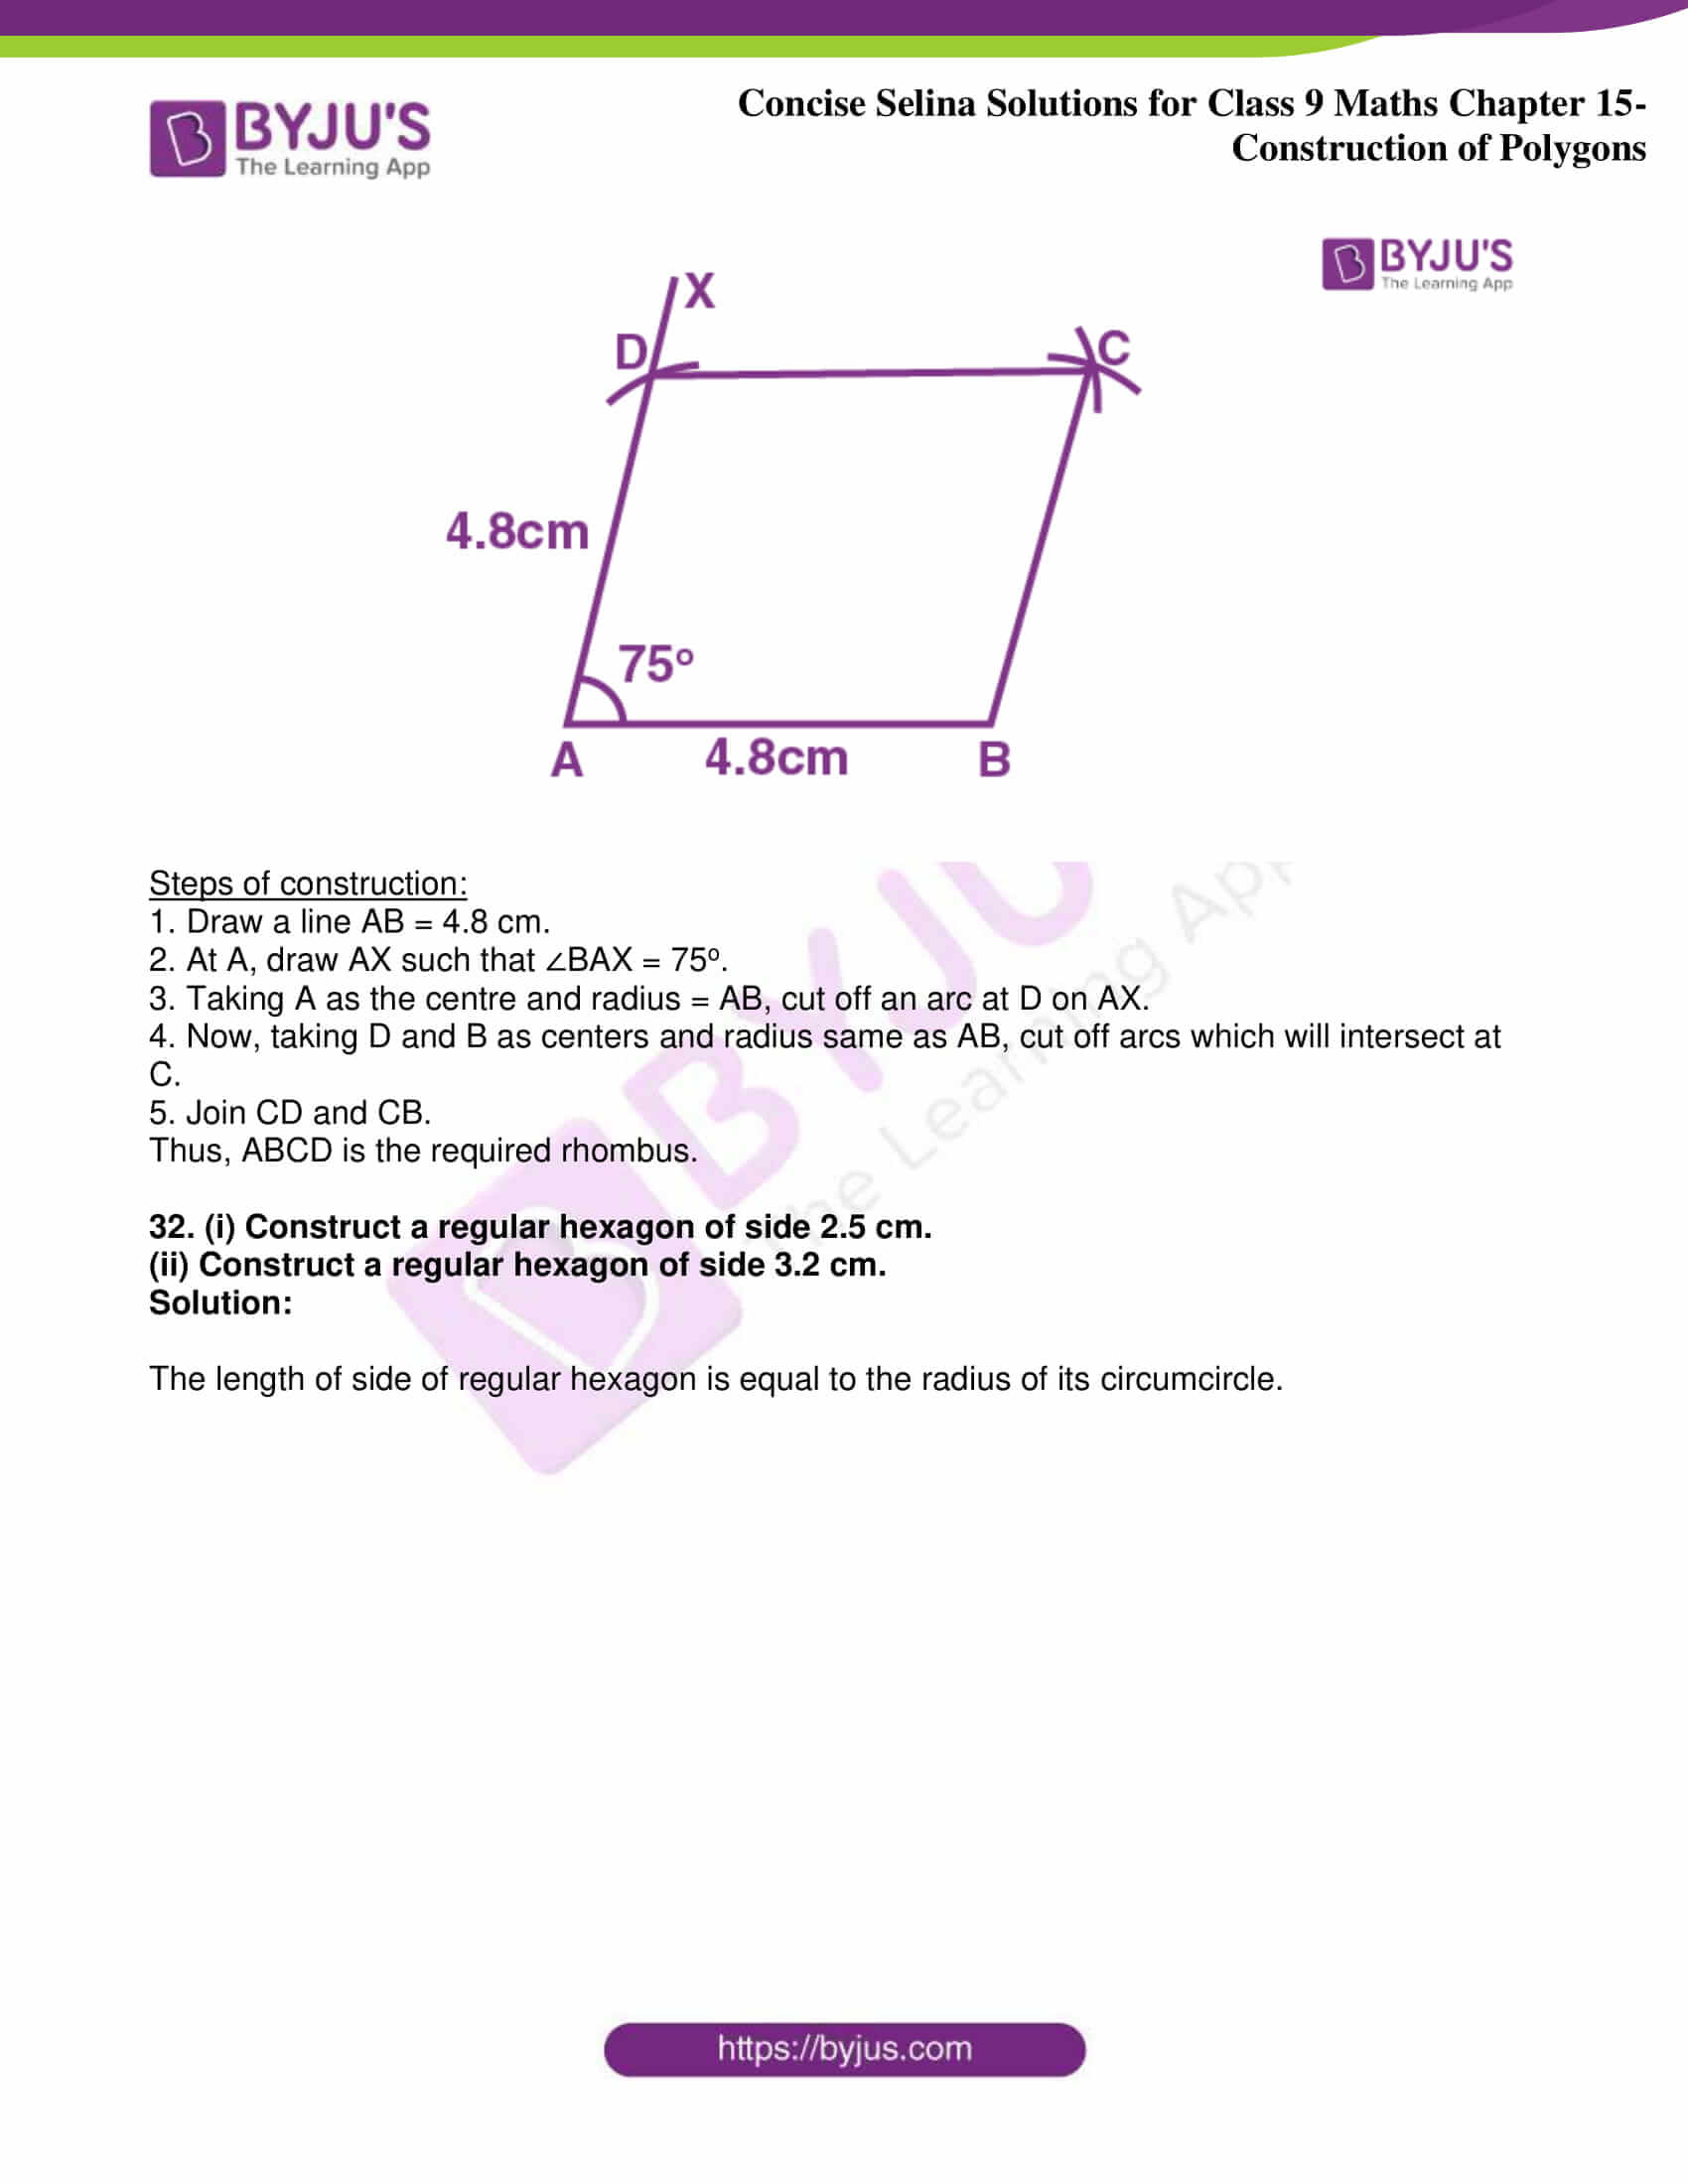 icse class 9 jun8 maths selina solutions chapter 15 construction of polygons 23